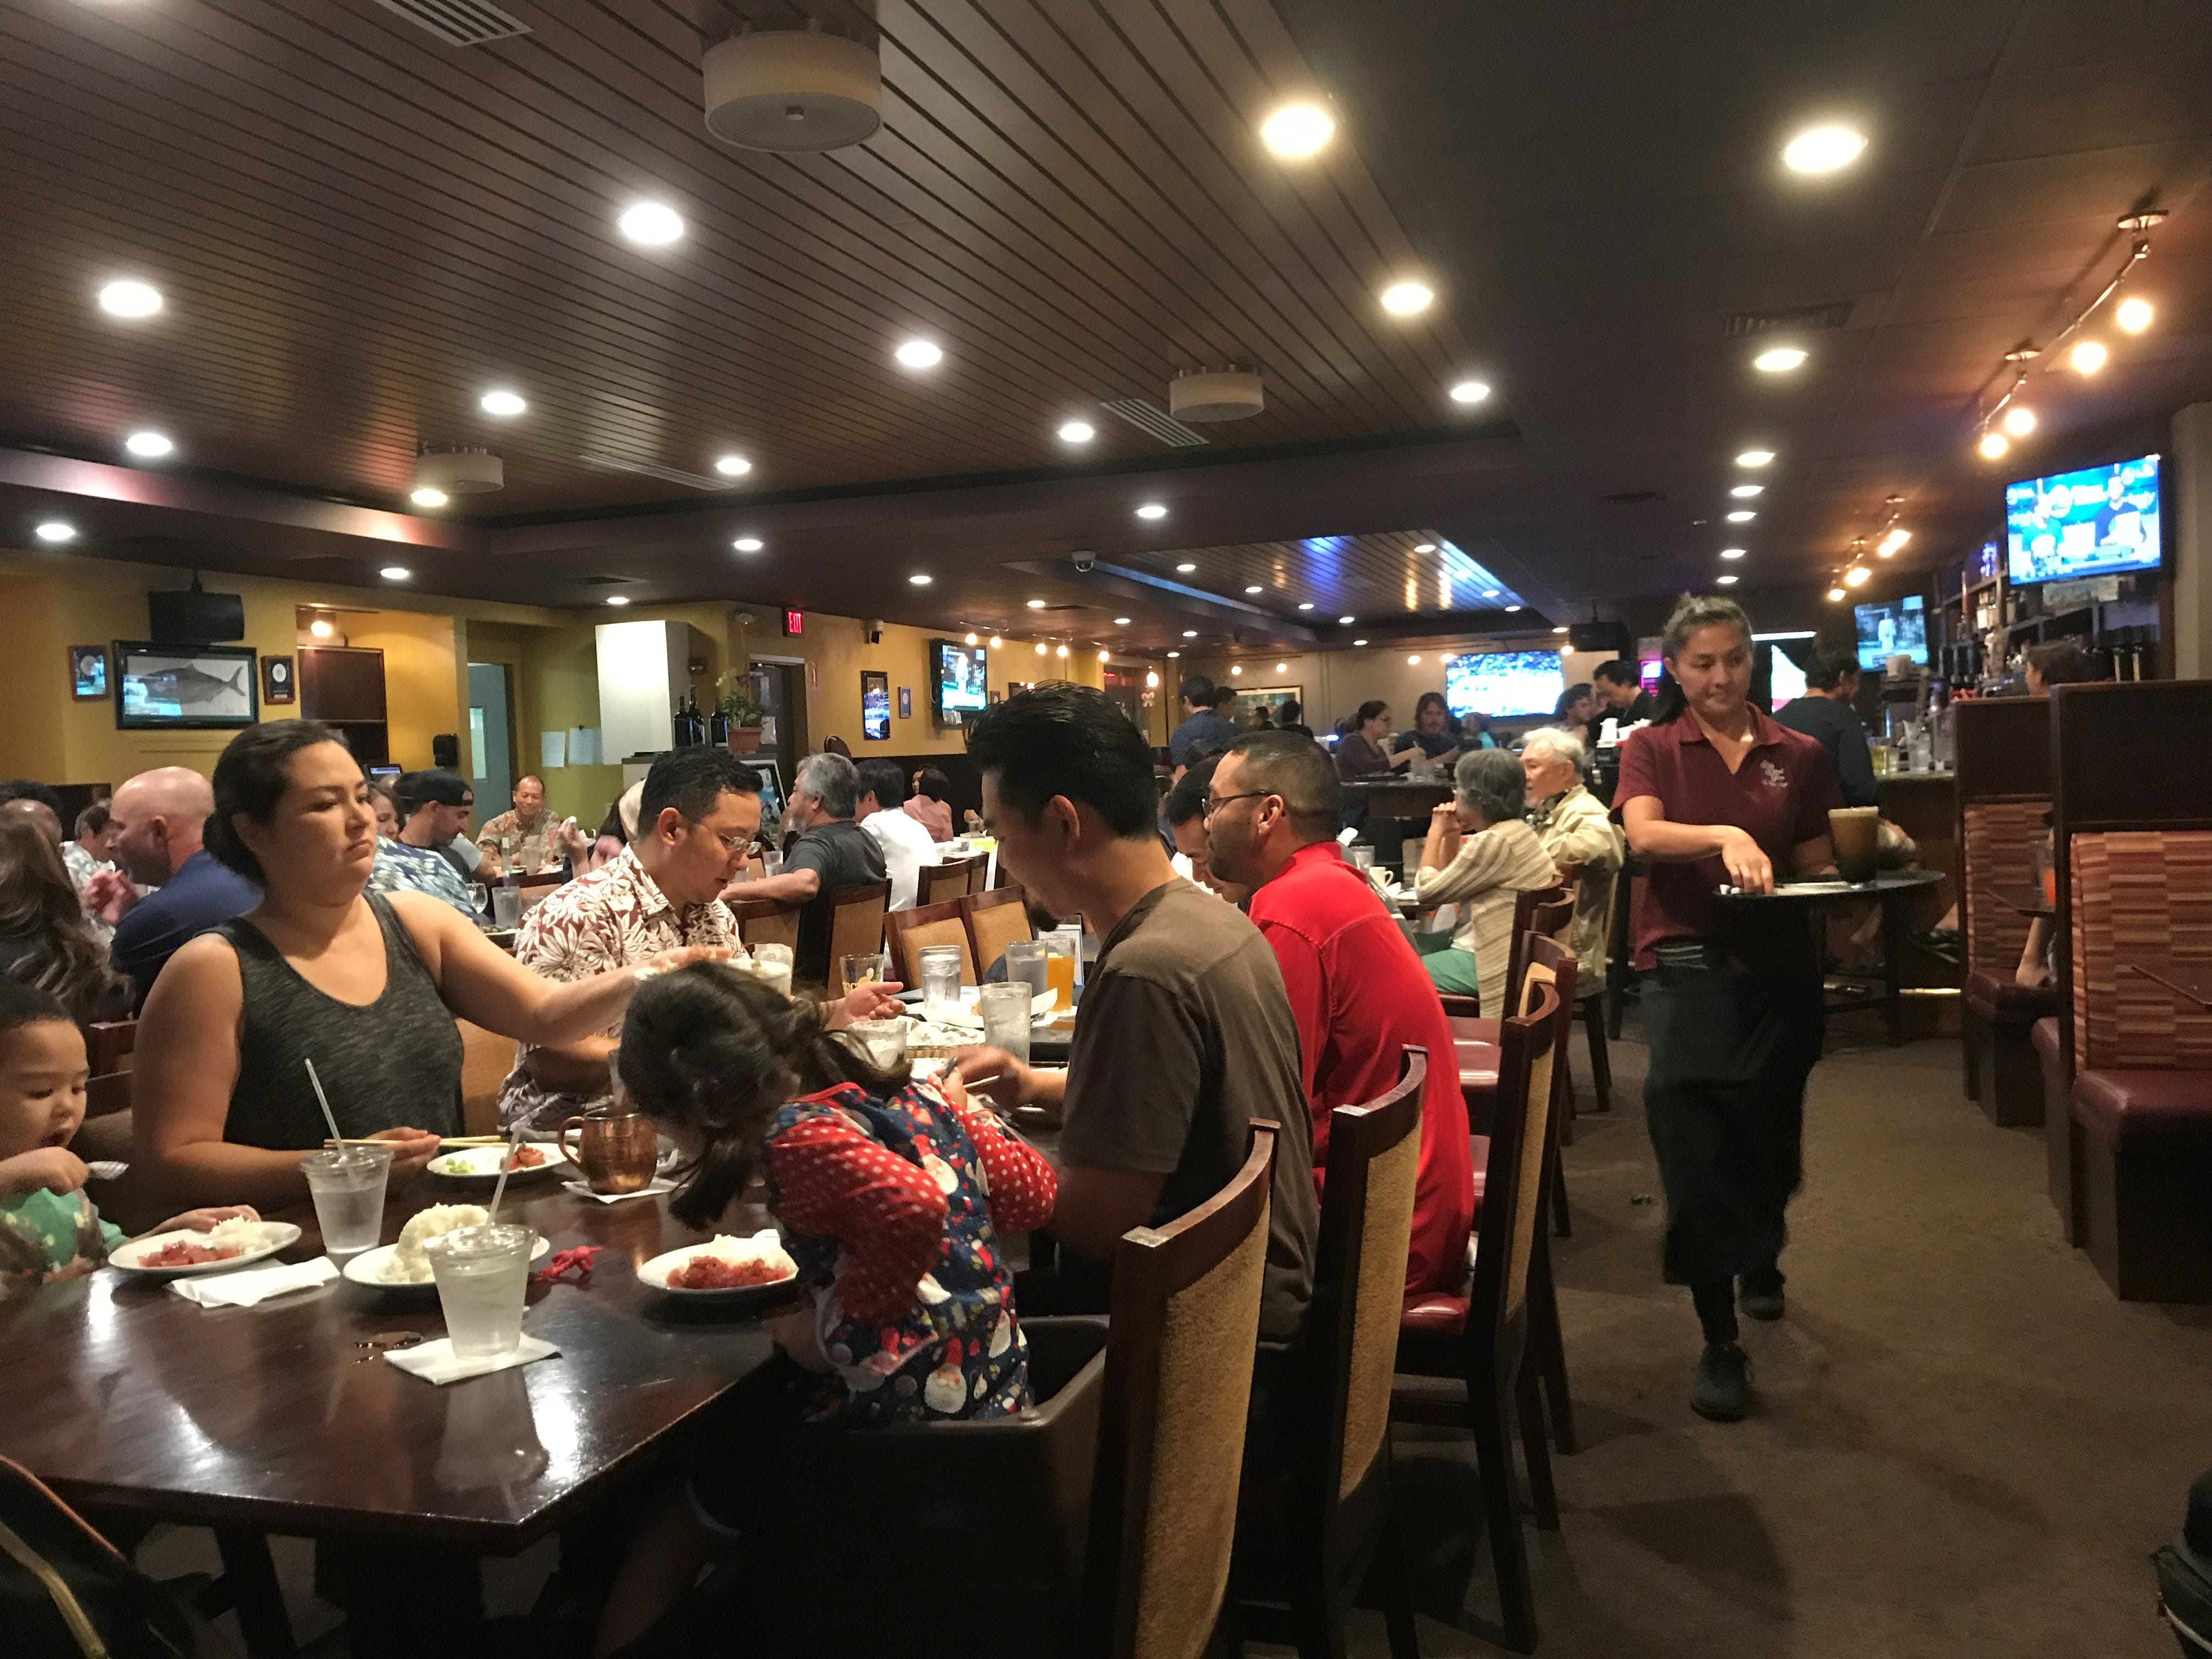 Because food is served in big portions for sharing, the Side Street Inn is very popular with Honolulu locals for family gatherings.